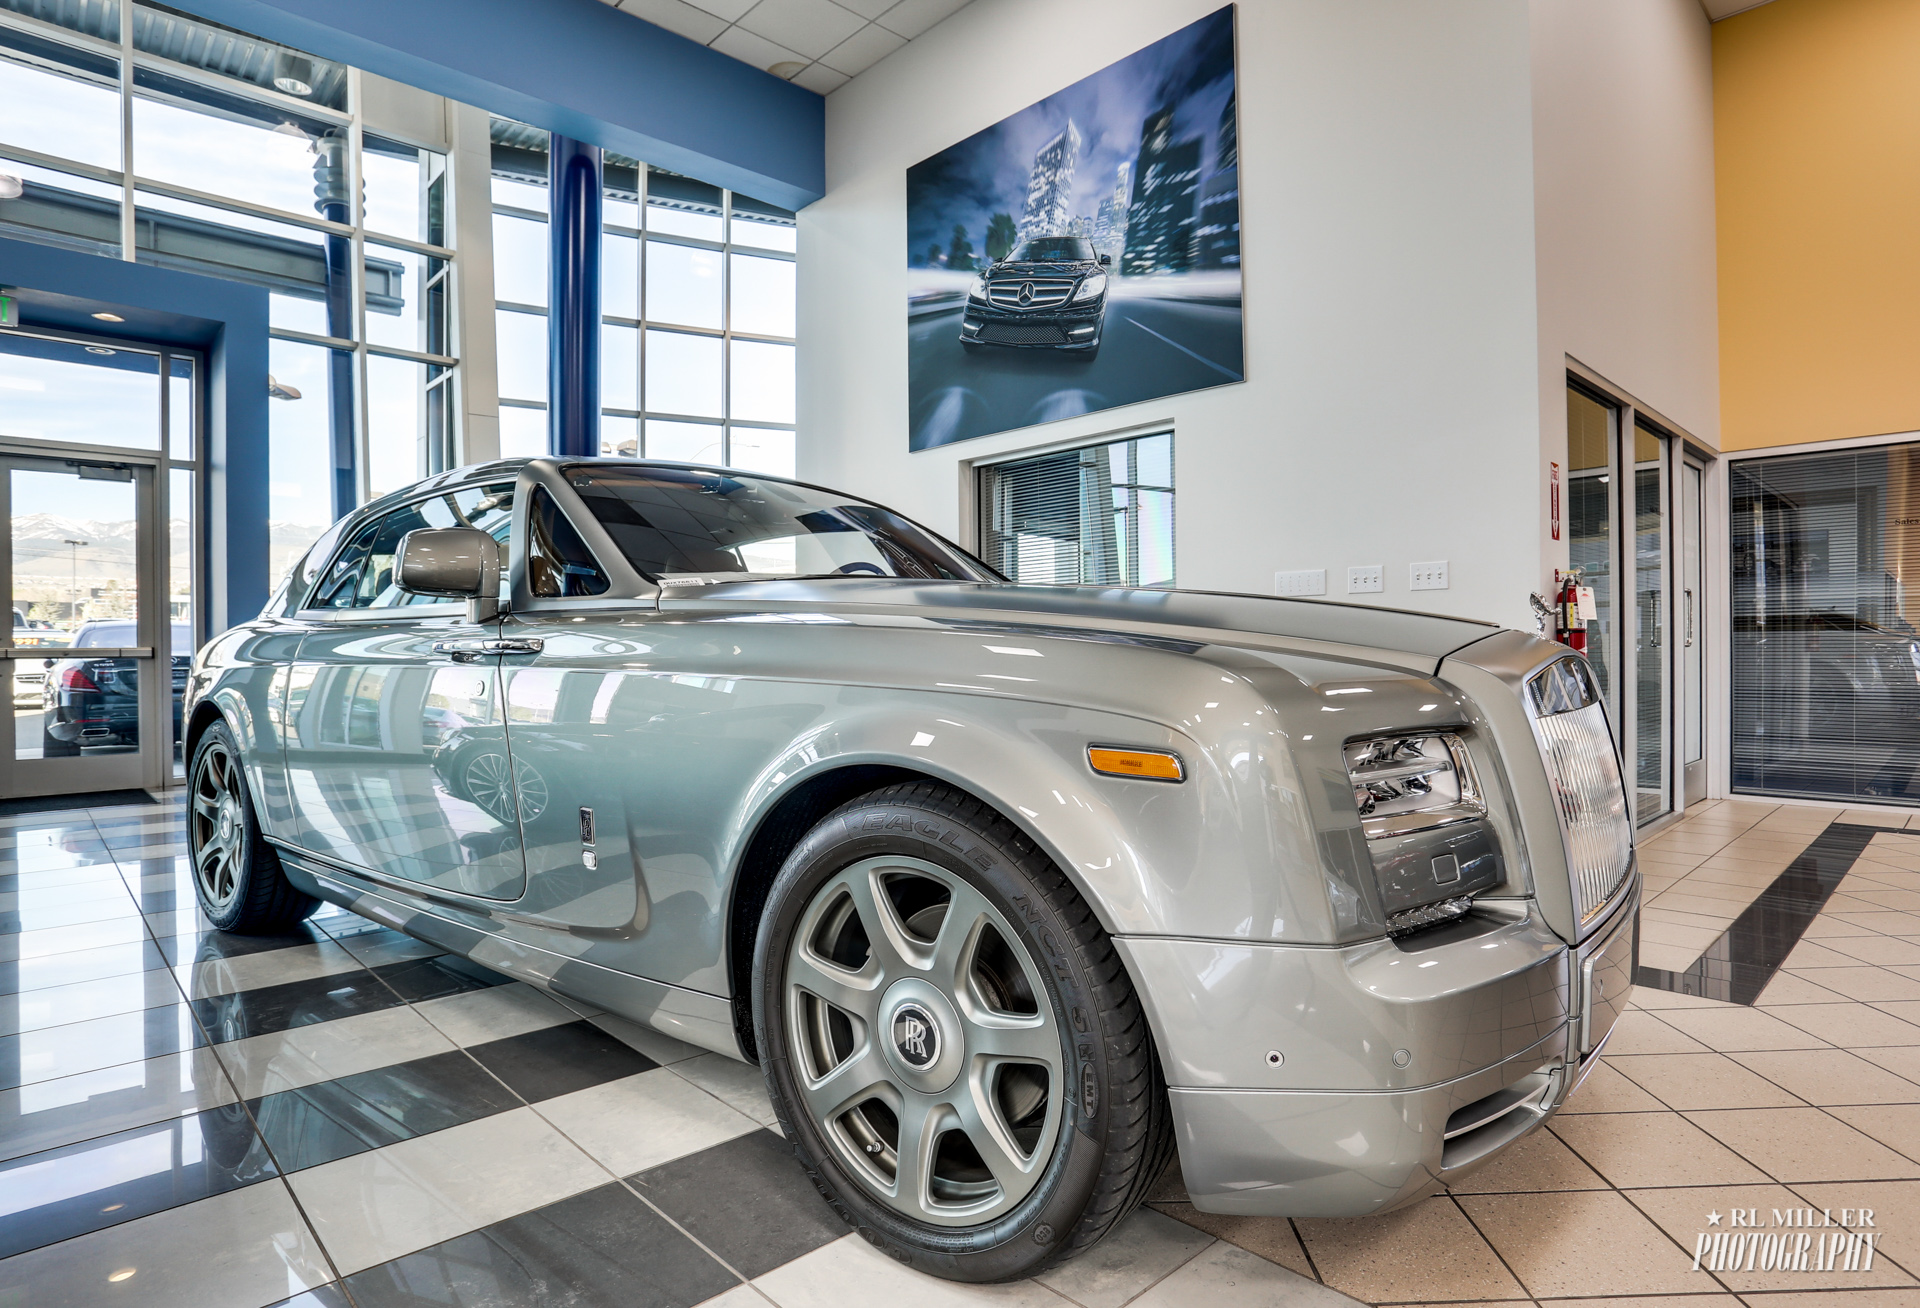 Rolls Royce Phantom Aviator Coup 233 Rl Miller Photography Llc